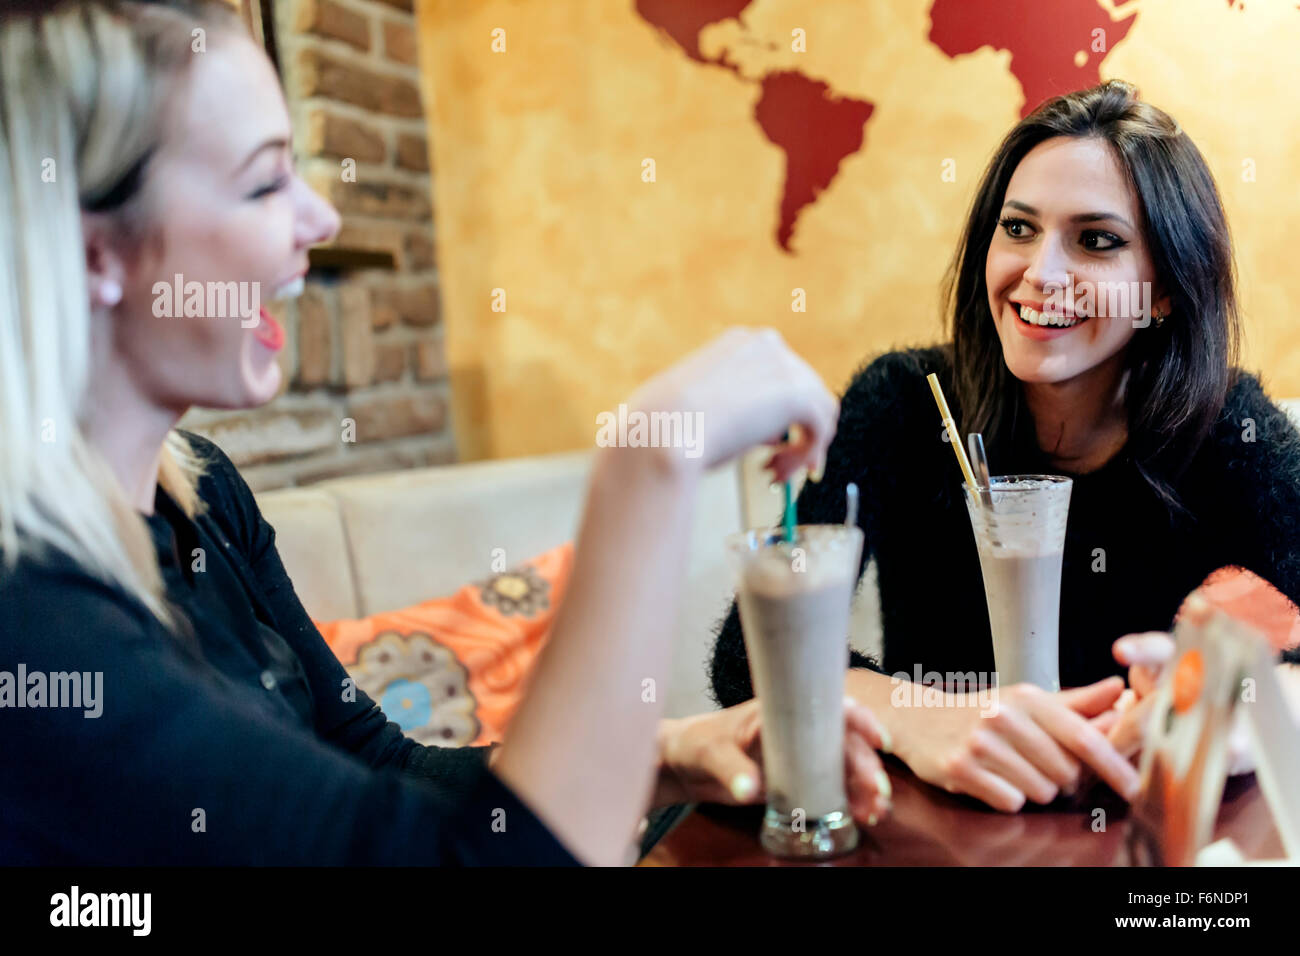 Two women drinking and talking in cafe while having a good time - Stock Image